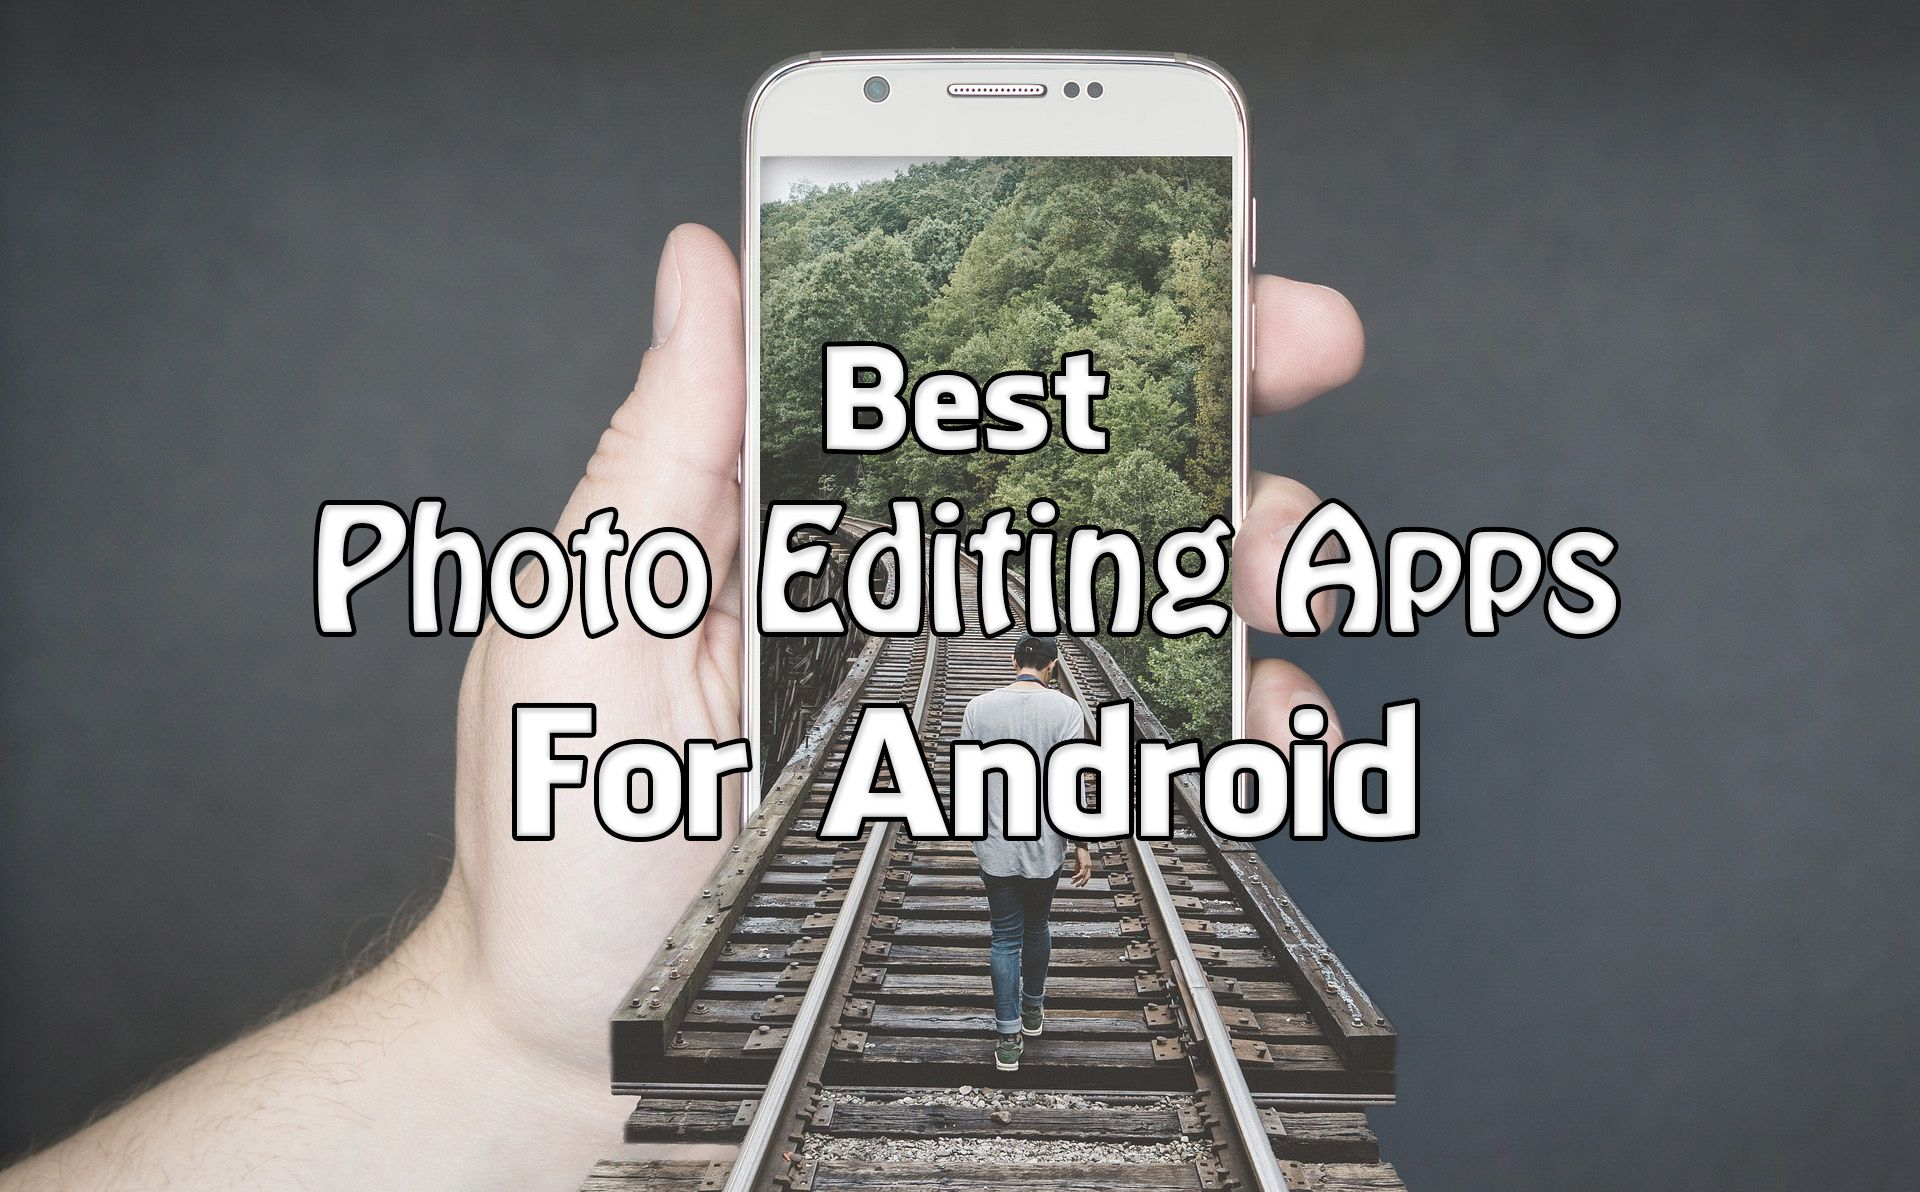 images?q=tbn:ANd9GcQh_l3eQ5xwiPy07kGEXjmjgmBKBRB7H2mRxCGhv1tFWg5c_mWT Best Photography Android Phone @http://capturingmomentsphotography.net.info